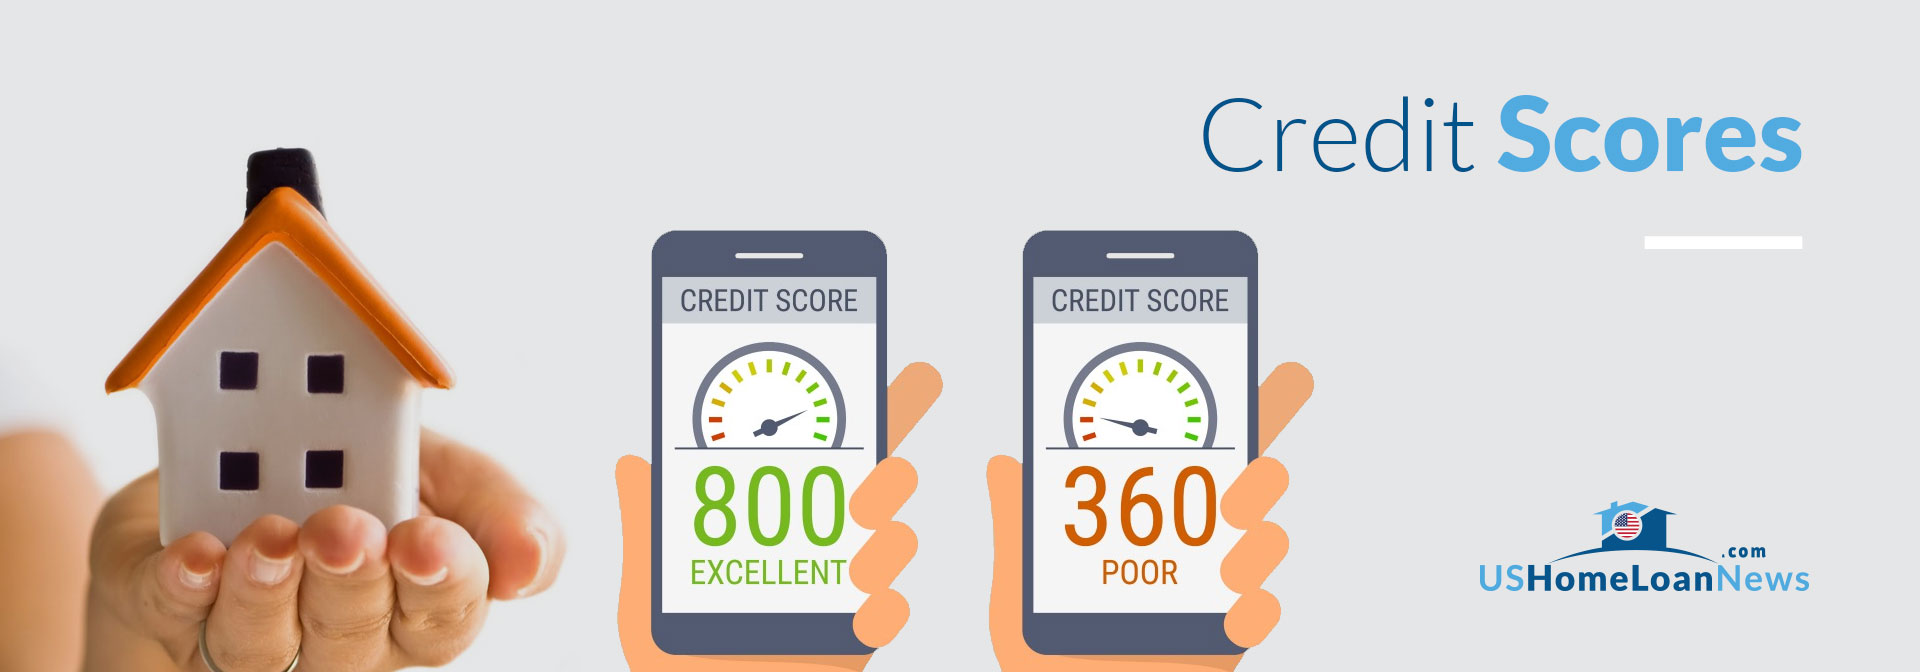 Good Credit Score? bad credit scores for home loan news